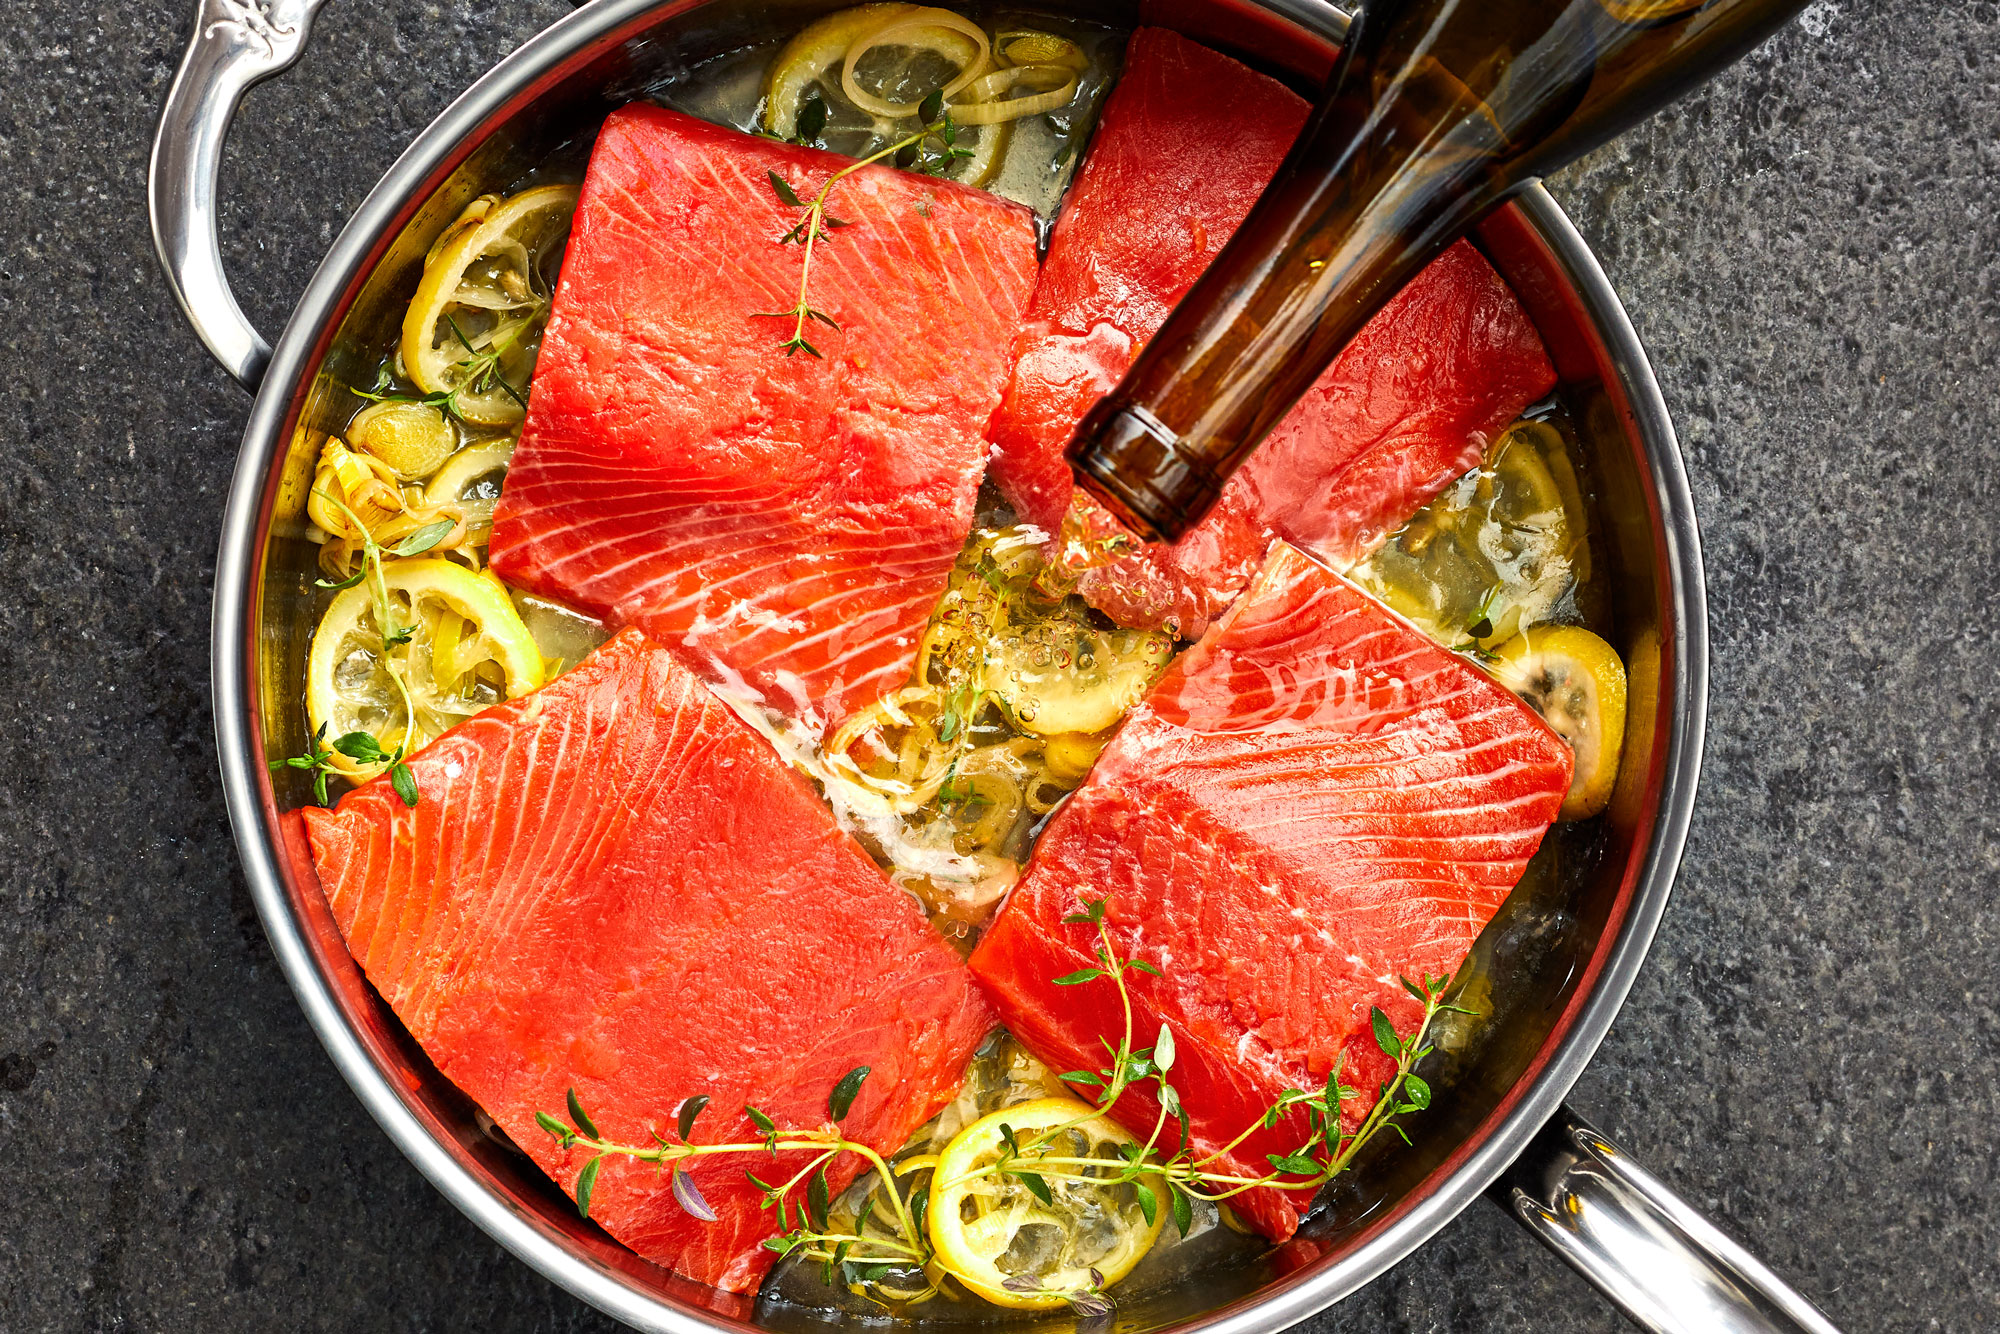 How to make slow poached salmon with leek beurre blanc